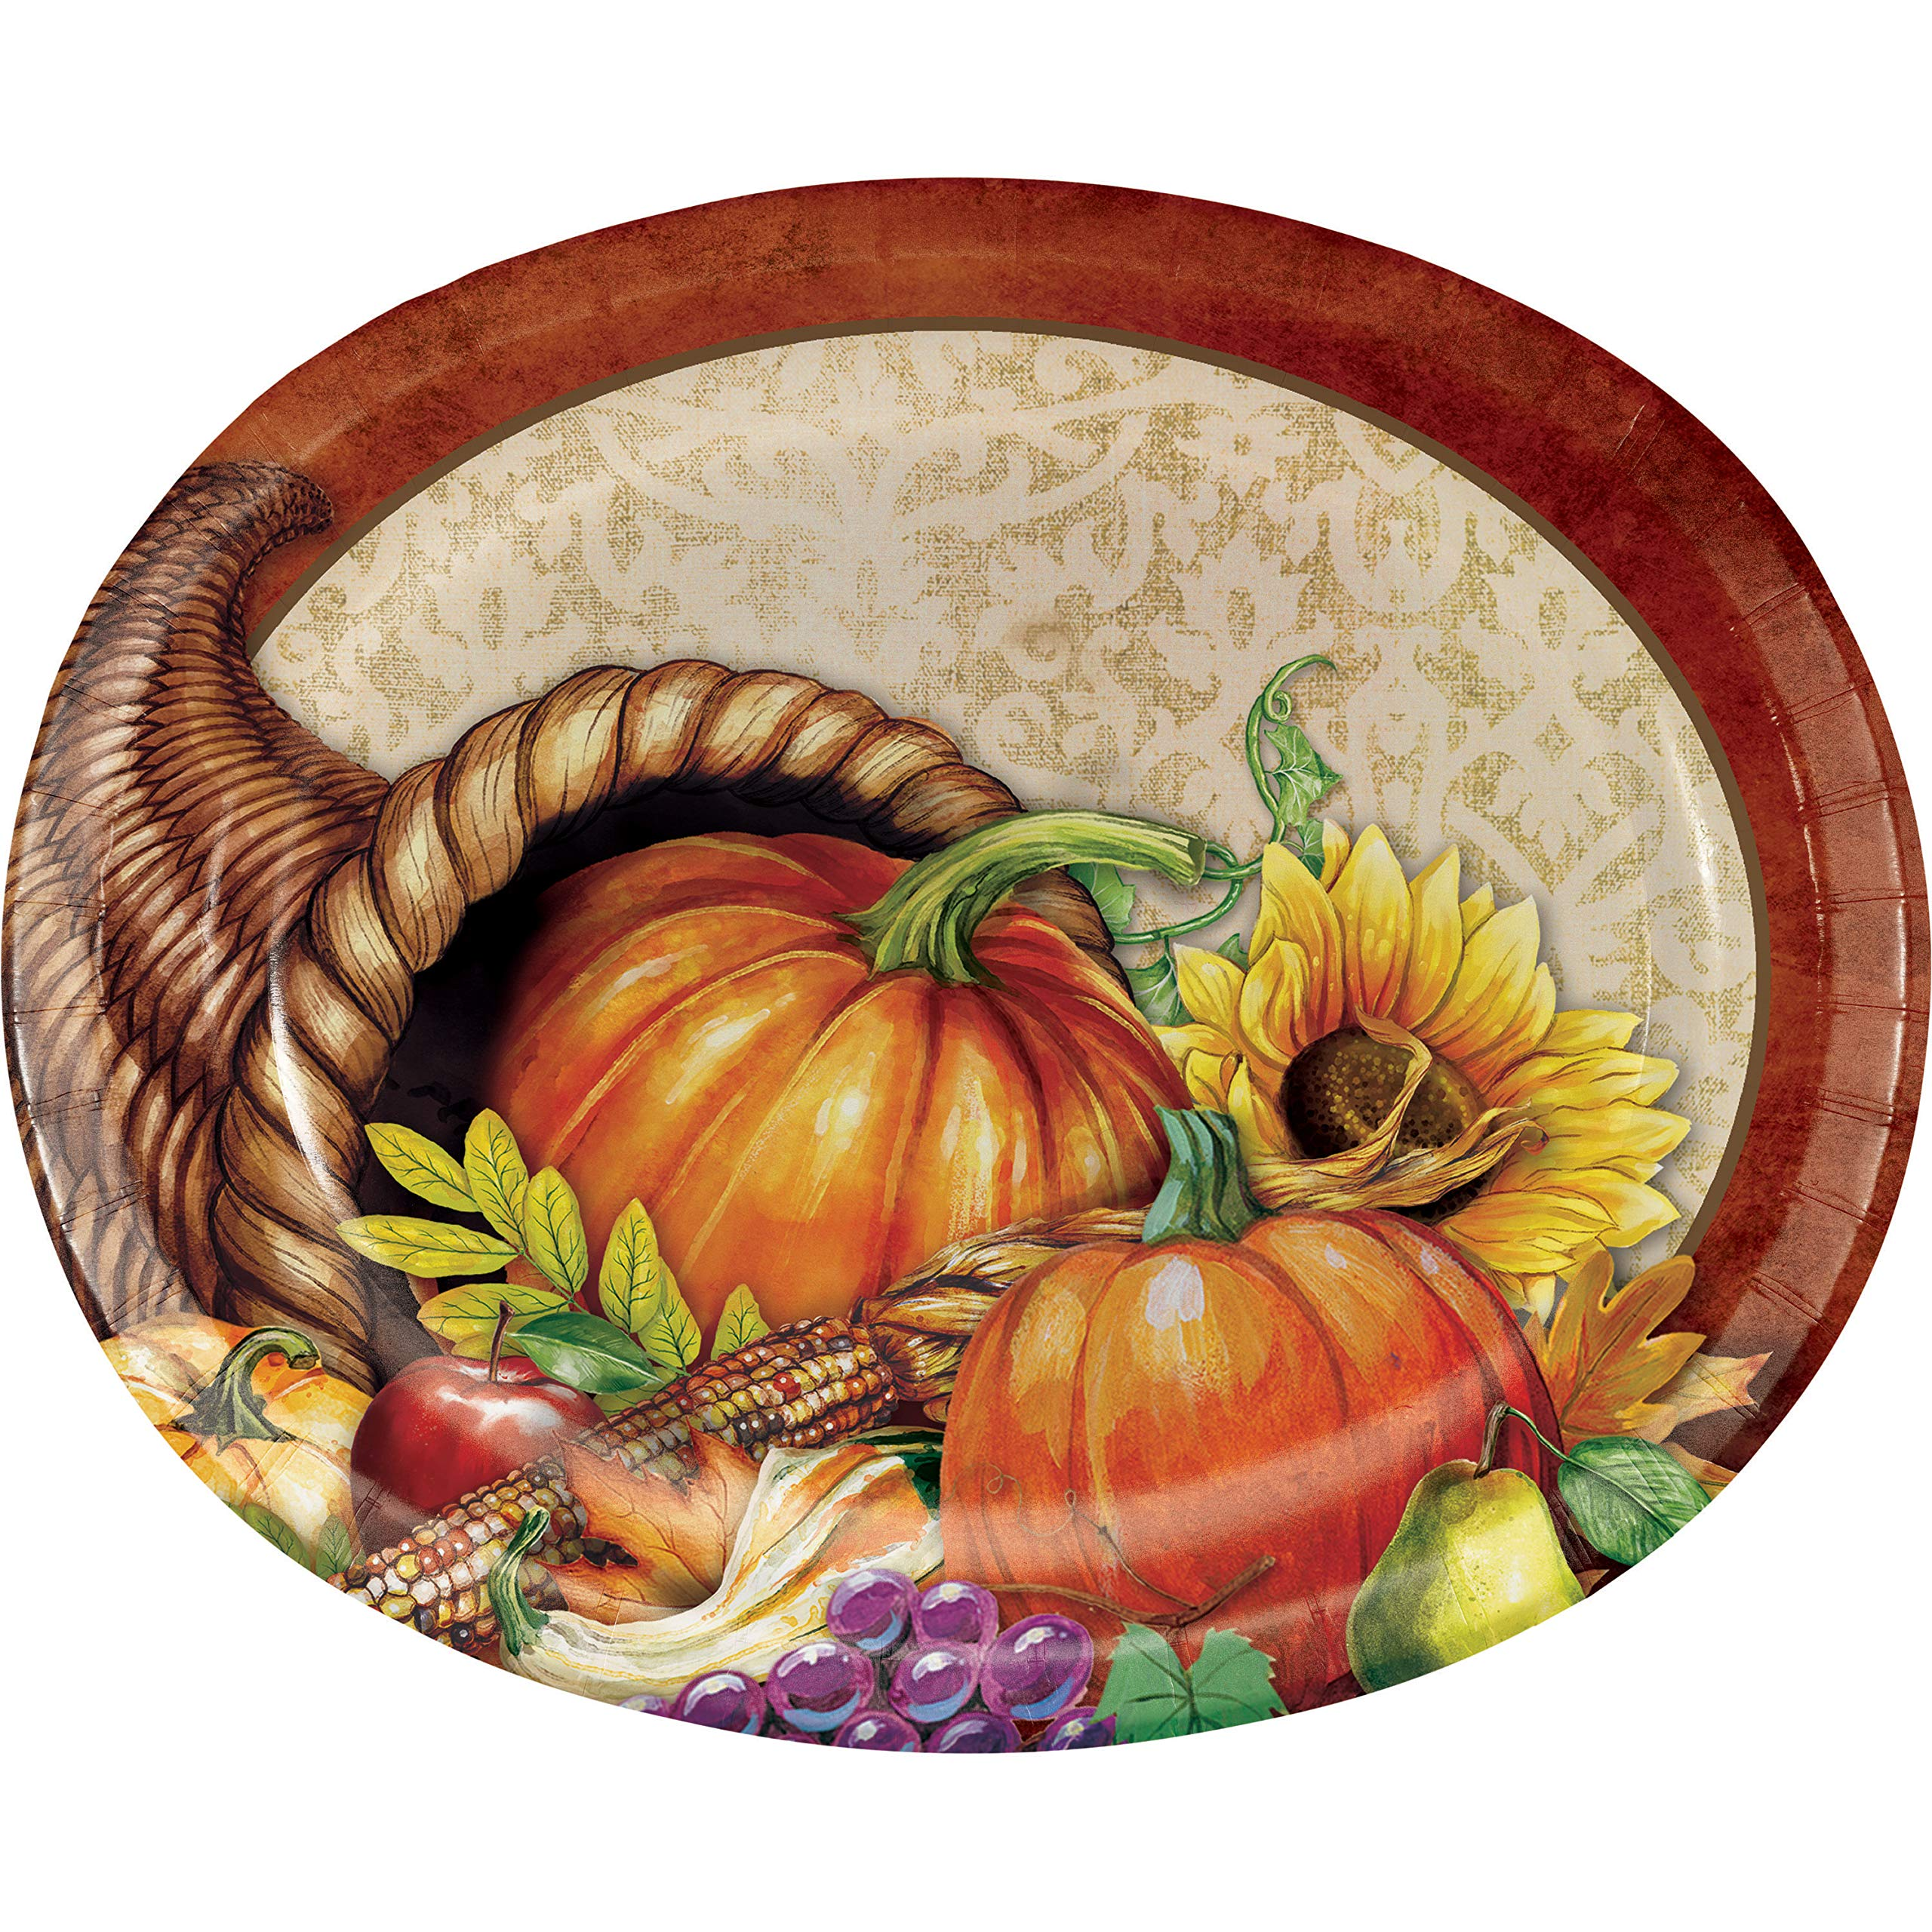 Harvest Thanksgiving Oval Plates, 24 ct by Creative Converting